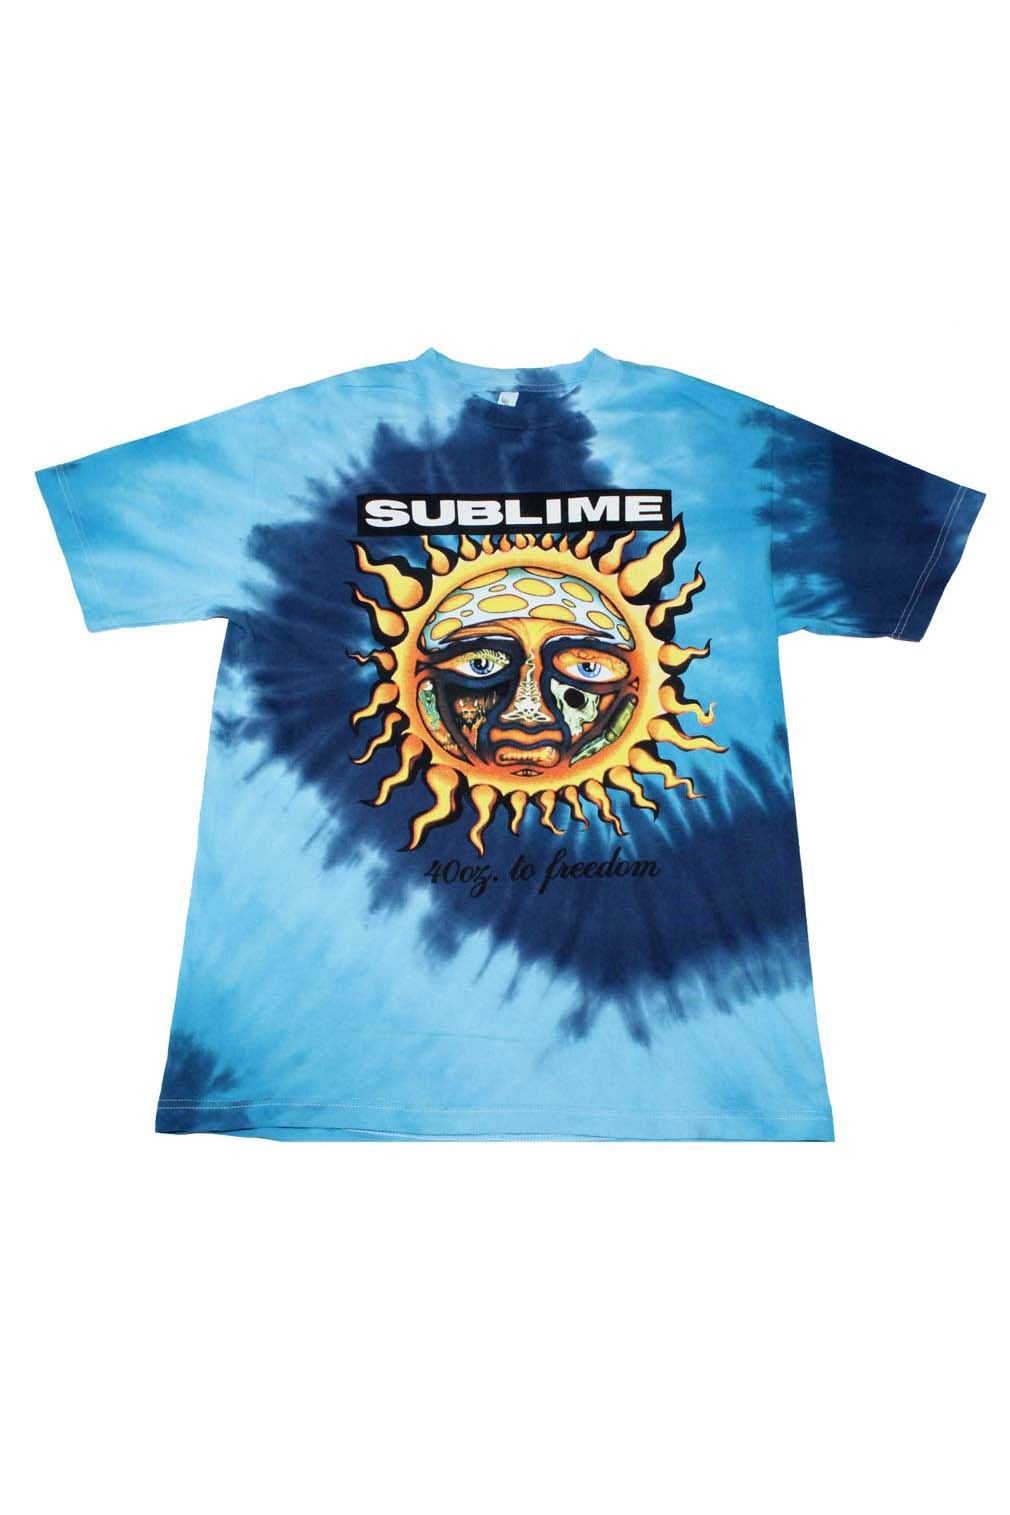 Sublime 40 Oz To Freedom Blue Tie Dye T-Shirt